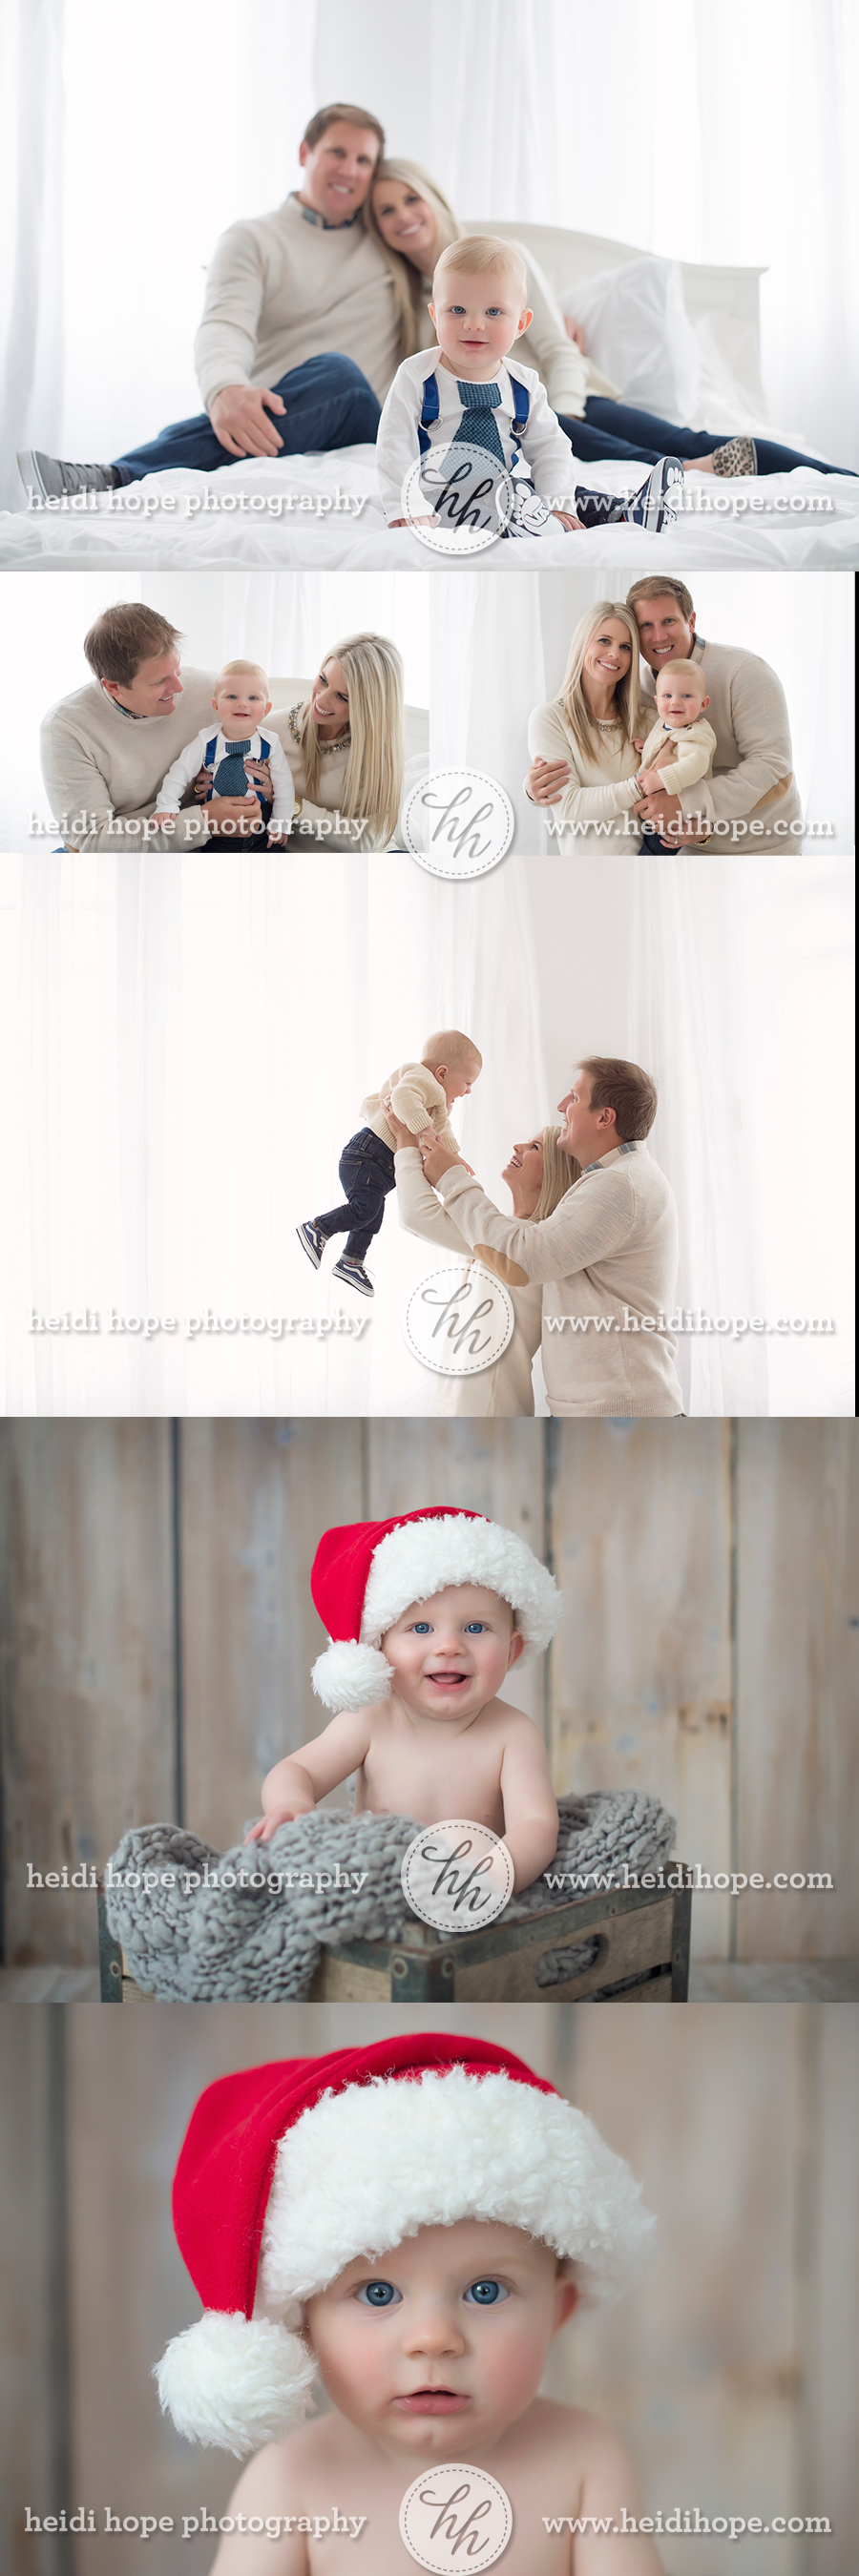 6 month old baby T and family! #christmas #baby #santa #family ...